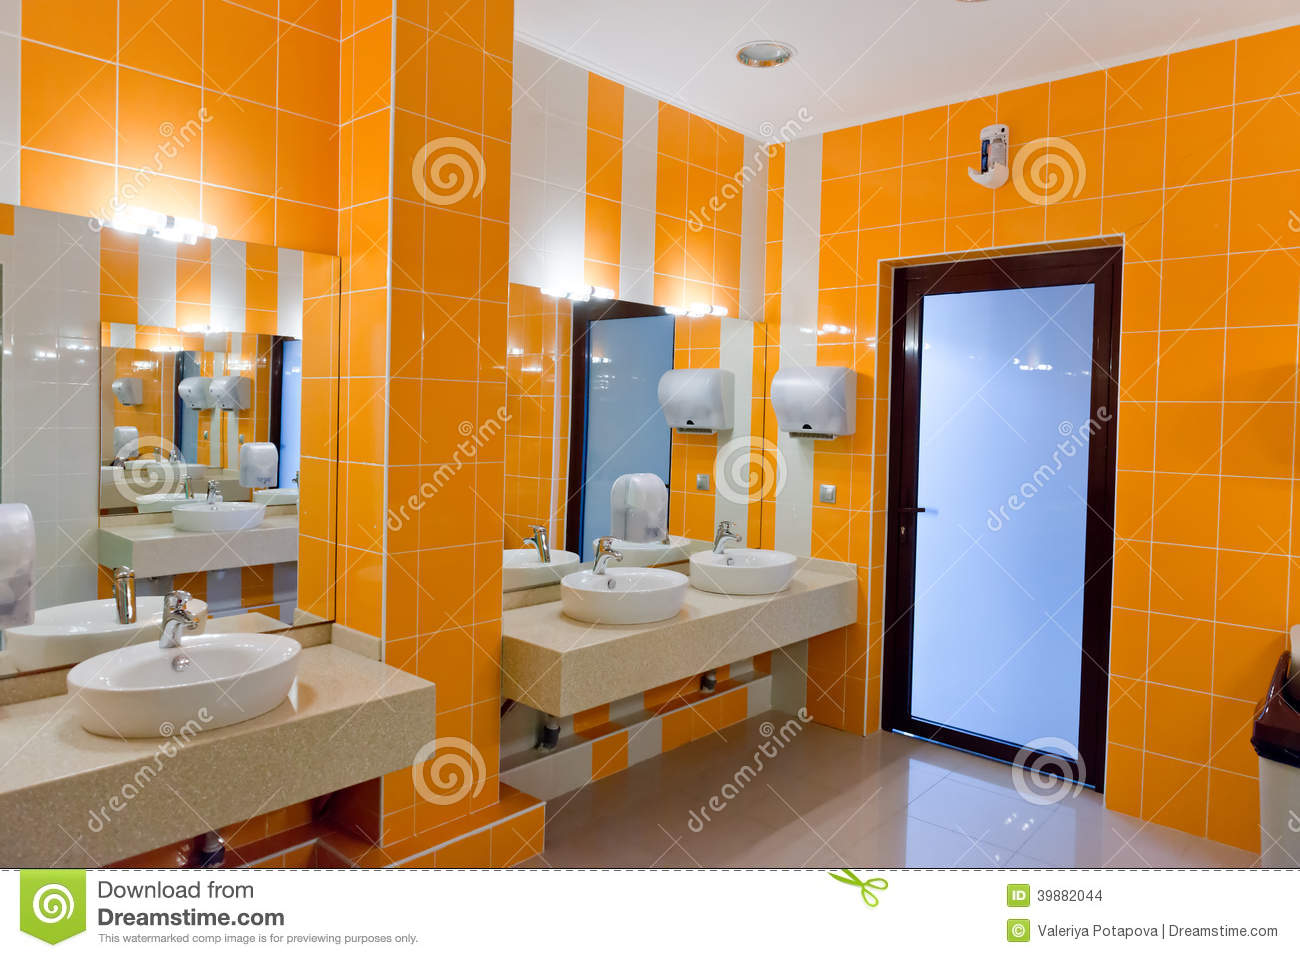 Public Restroom With Washstands Mirror Stock Photo Image 39882044